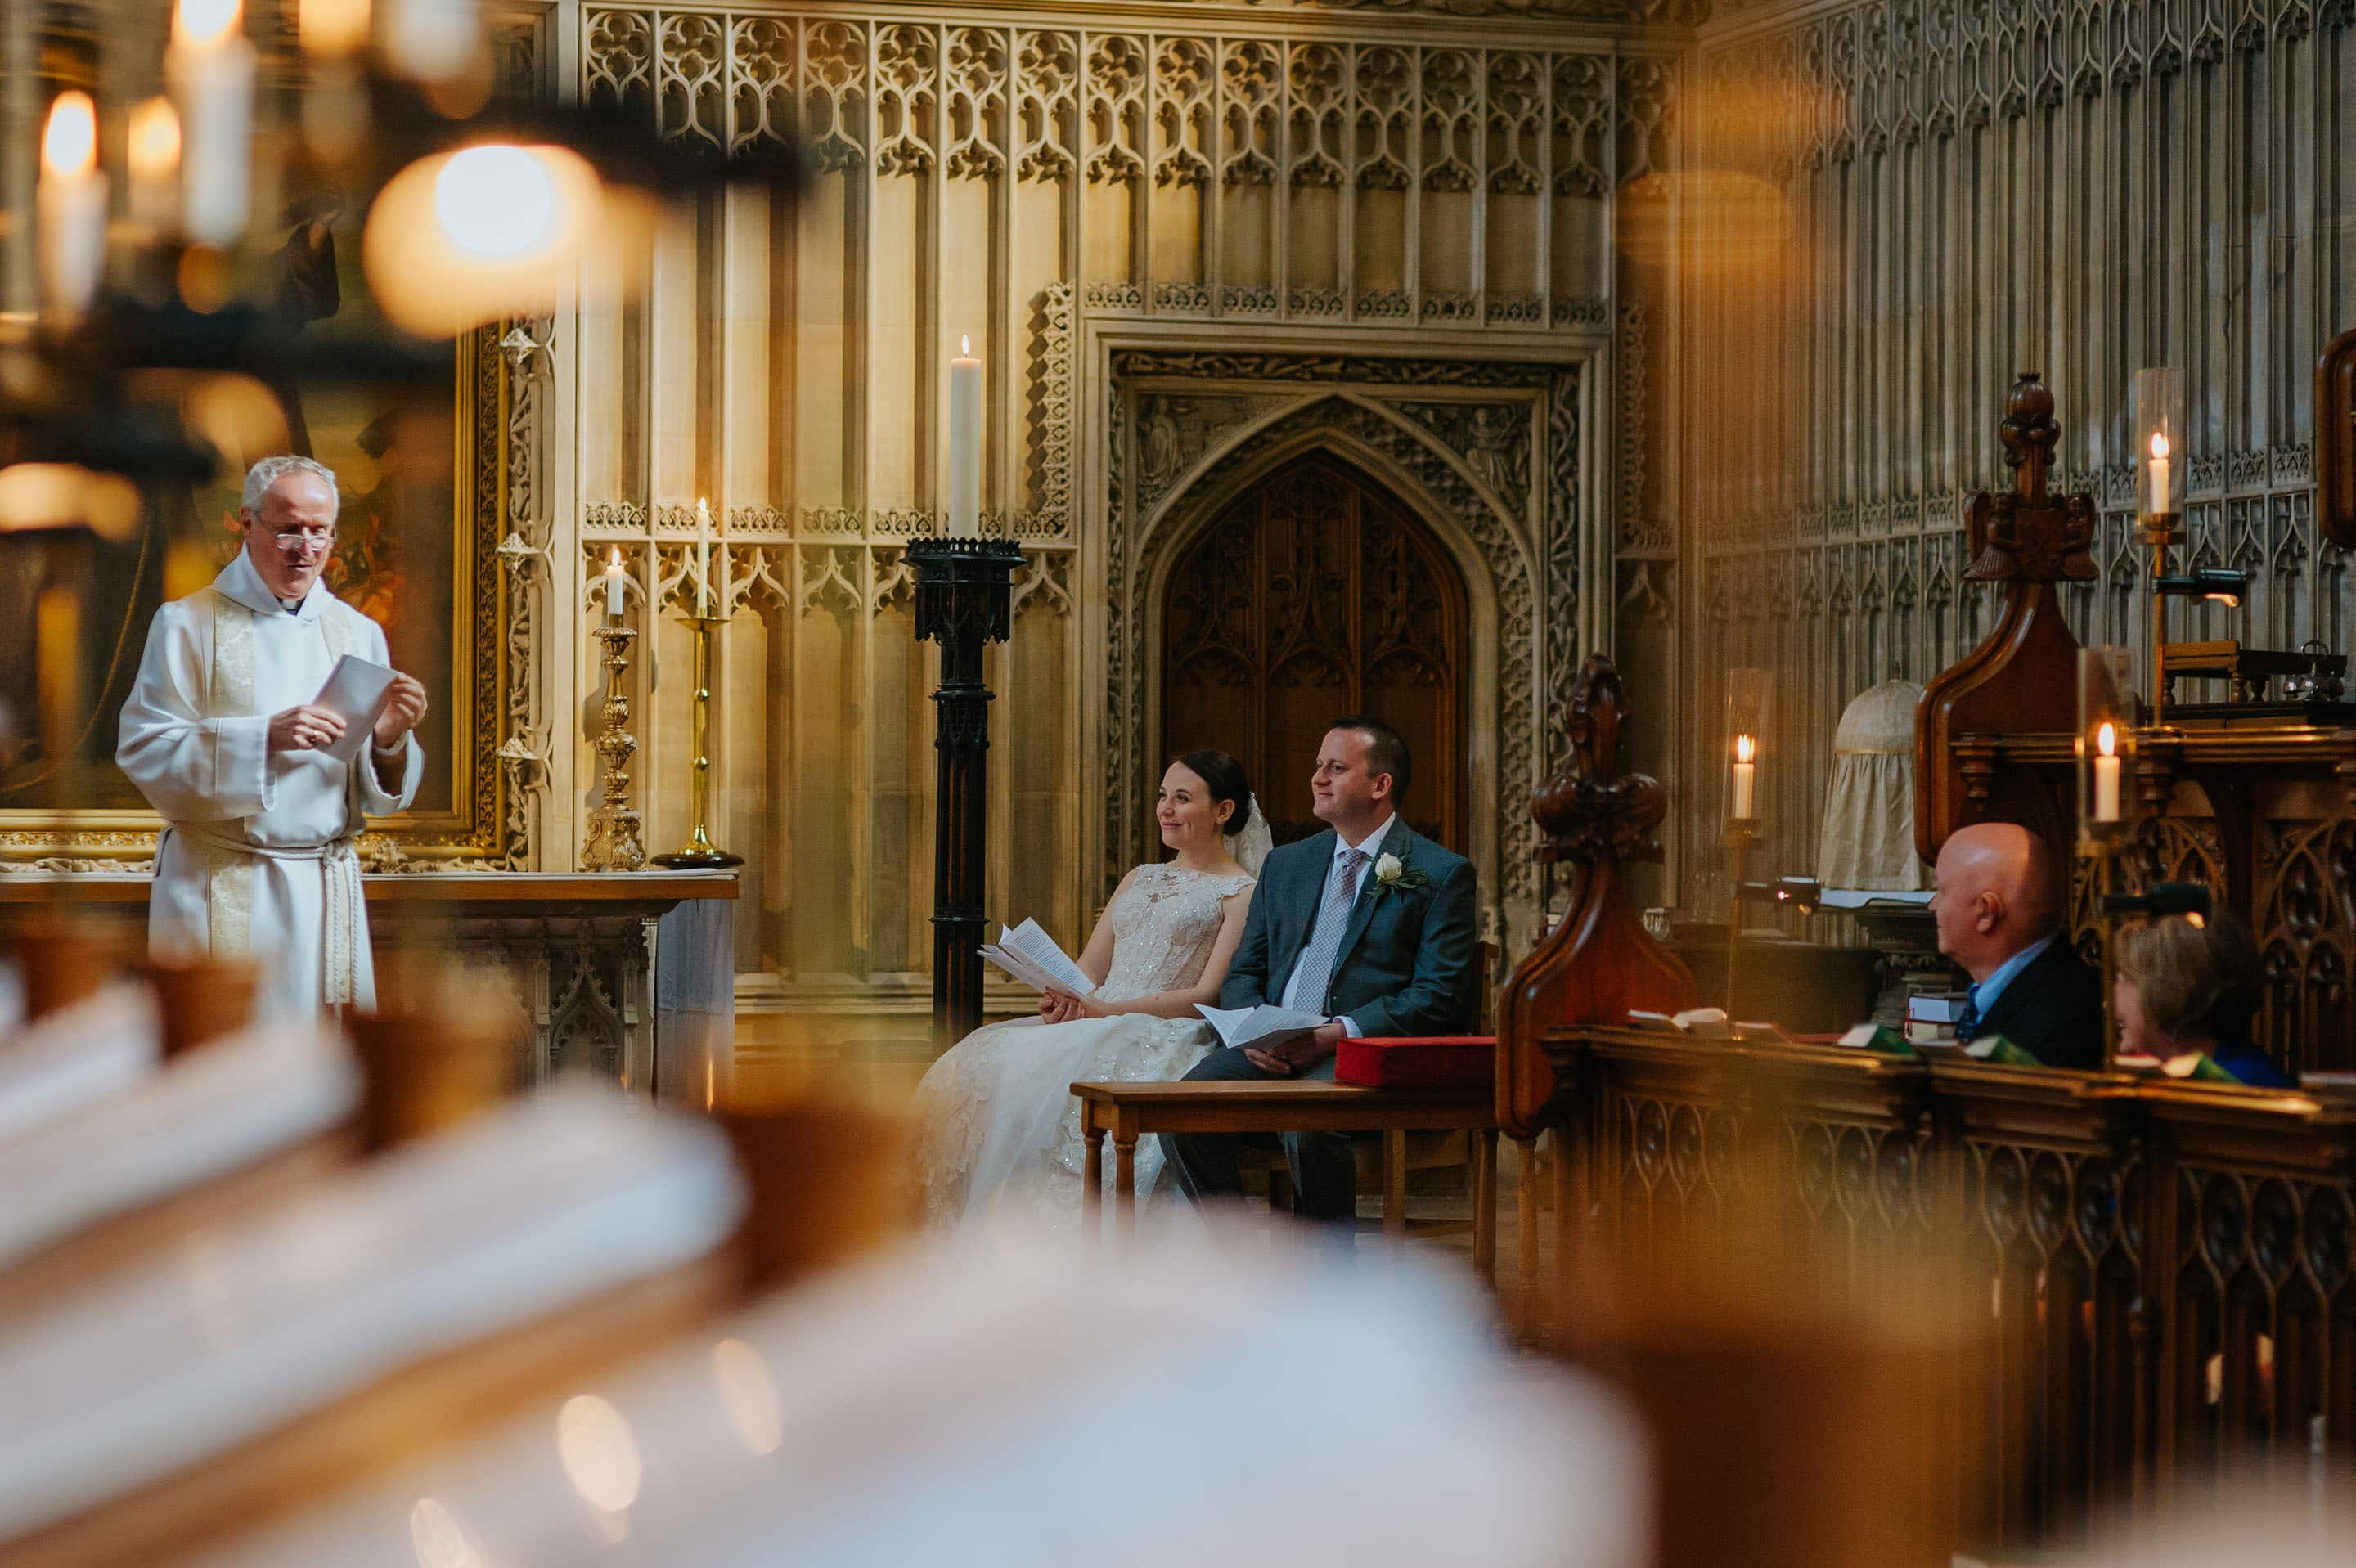 wedding at magdalen college in oxford 31 - Tommie + Virginia | Wedding at Magdalen College in Oxford